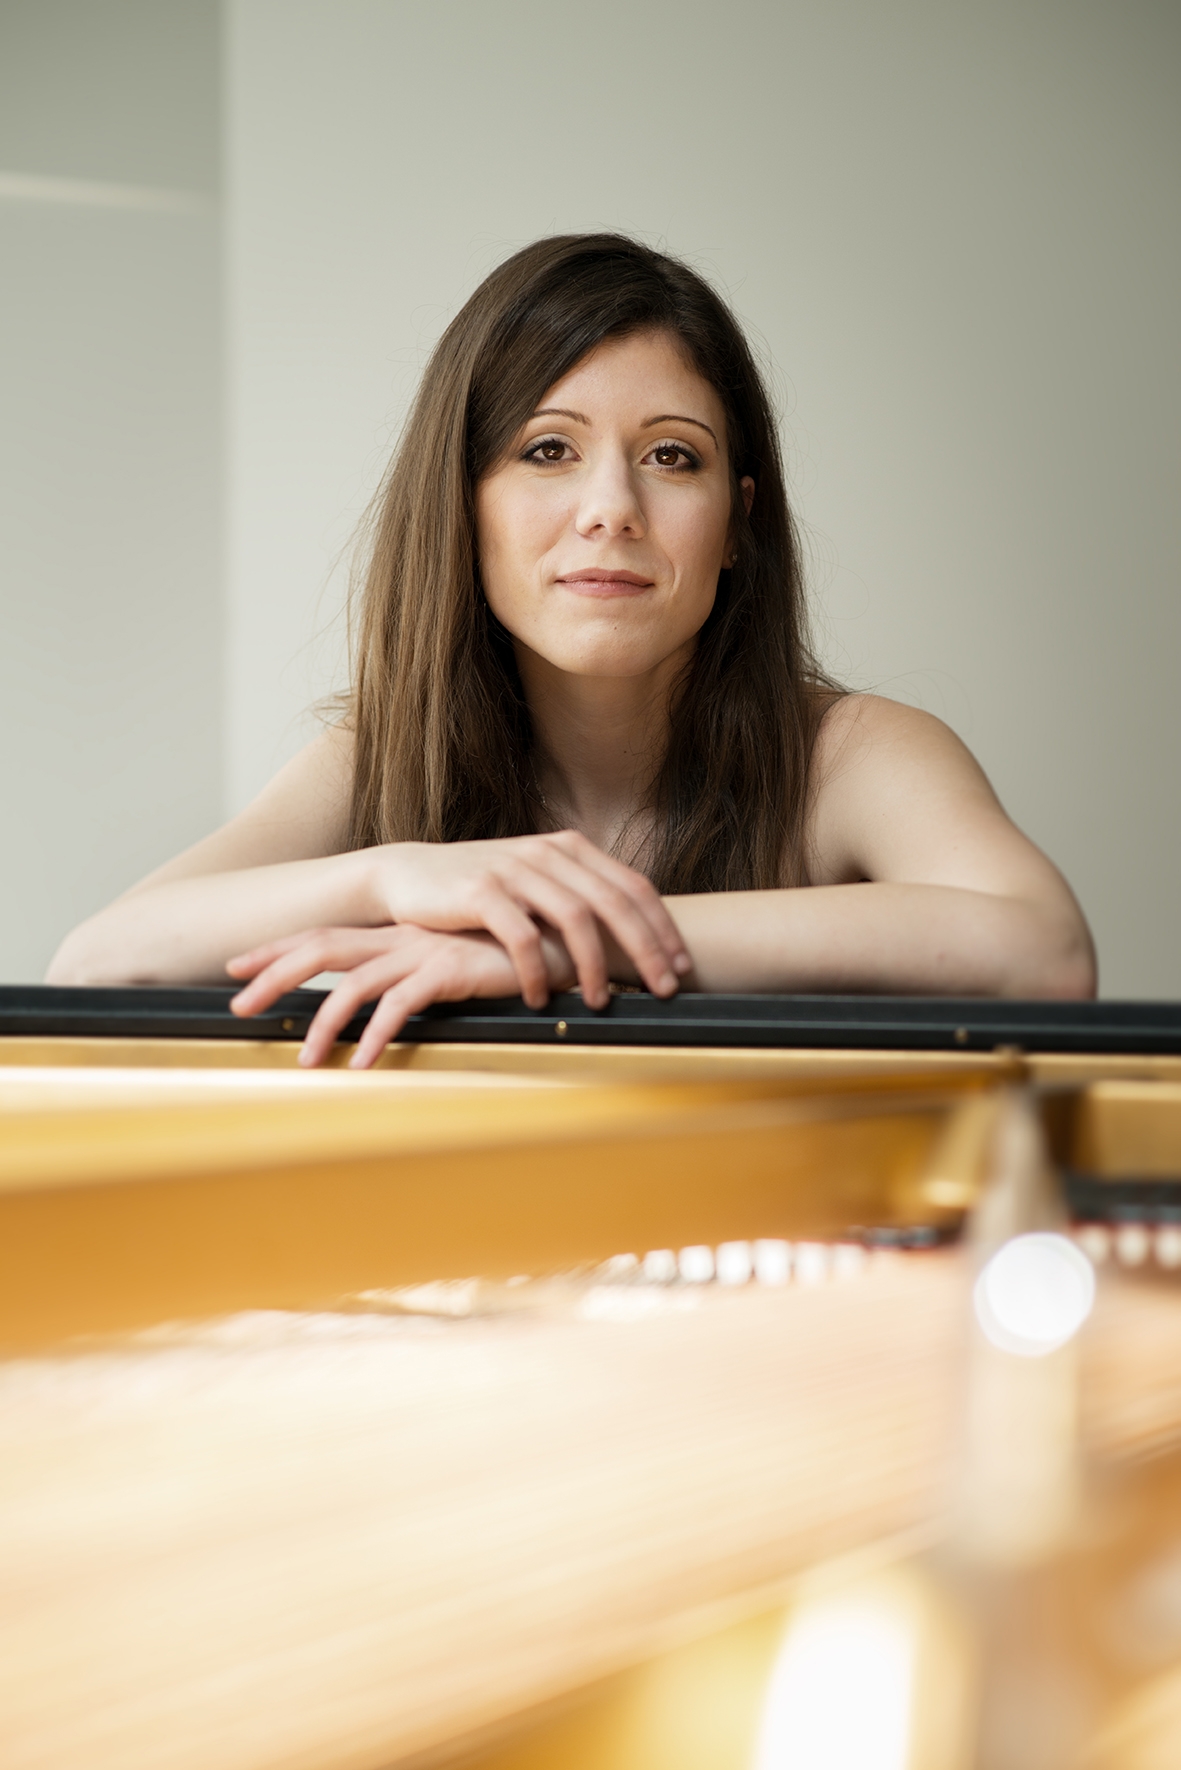 Georgiana Pletea, Pianist, Basel 2016